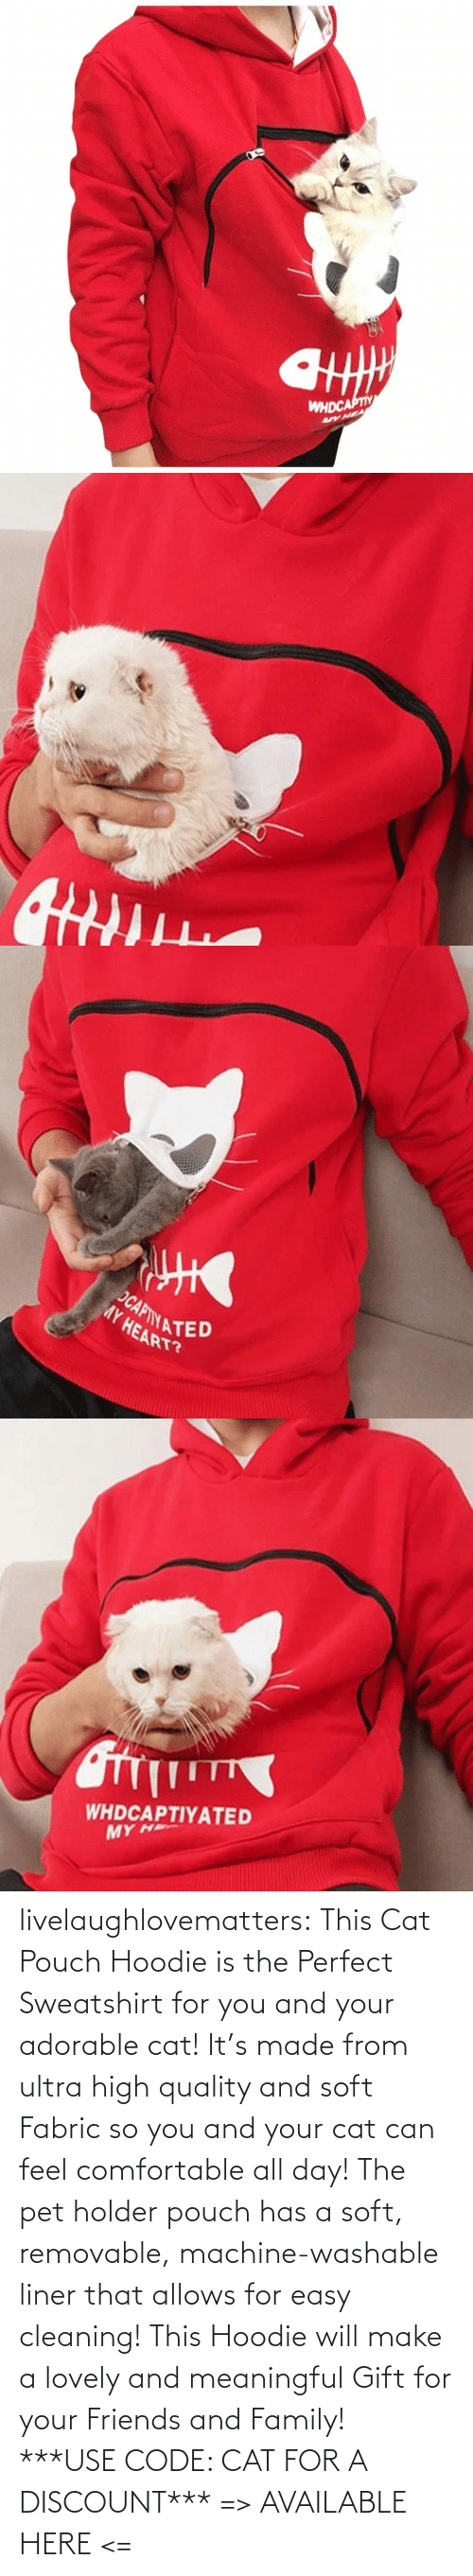 Adorable: livelaughlovematters: This Cat Pouch Hoodie is the Perfect Sweatshirt for you and your adorable cat! It's made from ultra high quality and soft Fabric so you and your cat can feel comfortable all day! The pet holder pouch has a soft, removable, machine-washable liner that allows for easy cleaning! This Hoodie will make a lovely and meaningful Gift for your Friends and Family!  ***USE CODE: CAT FOR A DISCOUNT*** => AVAILABLE HERE <=